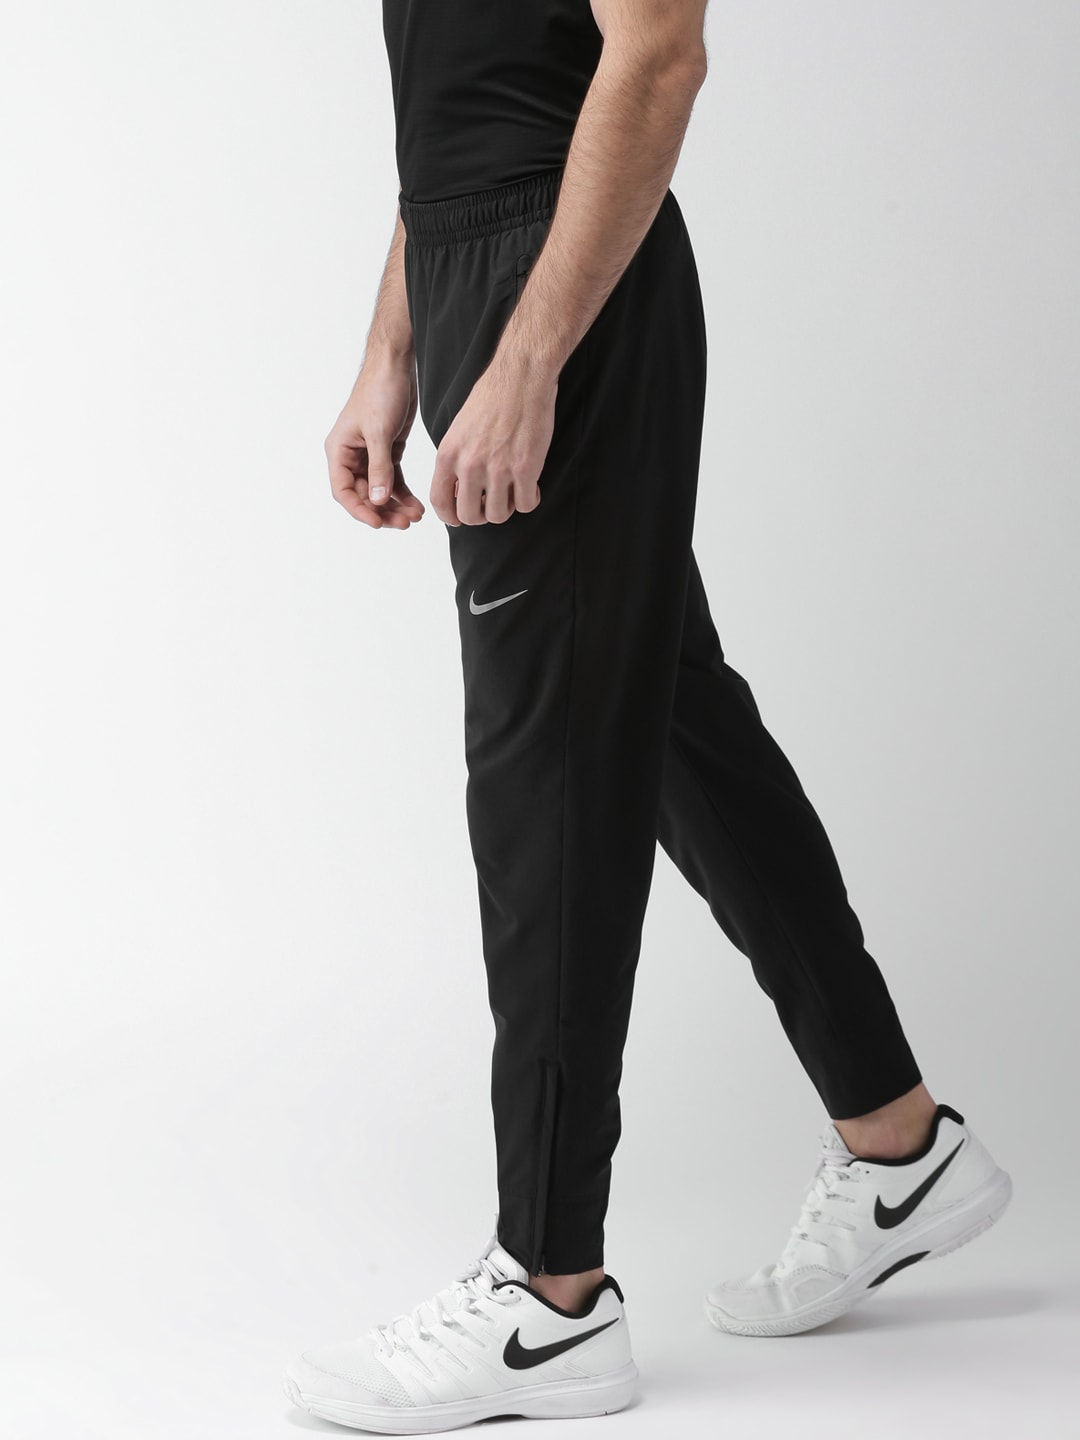 946d6272ca93 Men Track Pants-Buy Track Pant for Men Online in India